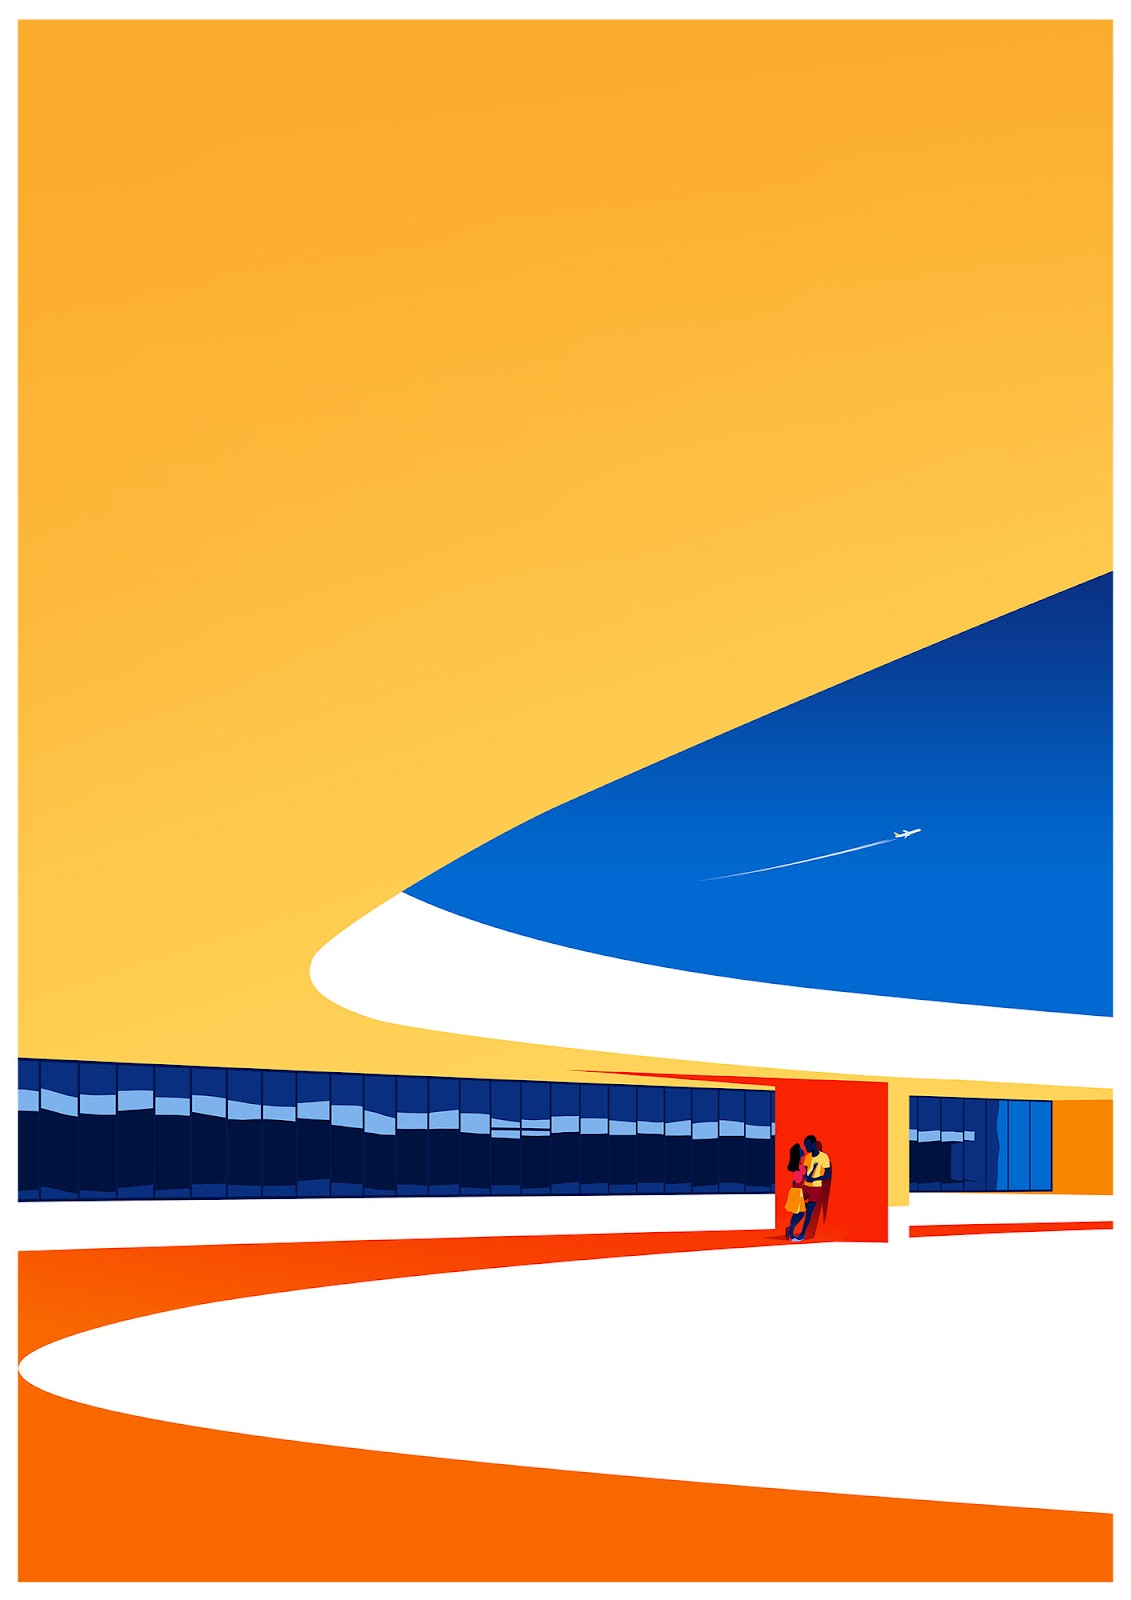 Illustration Celebrating Modernist Architecture of Oscar Niemeyer